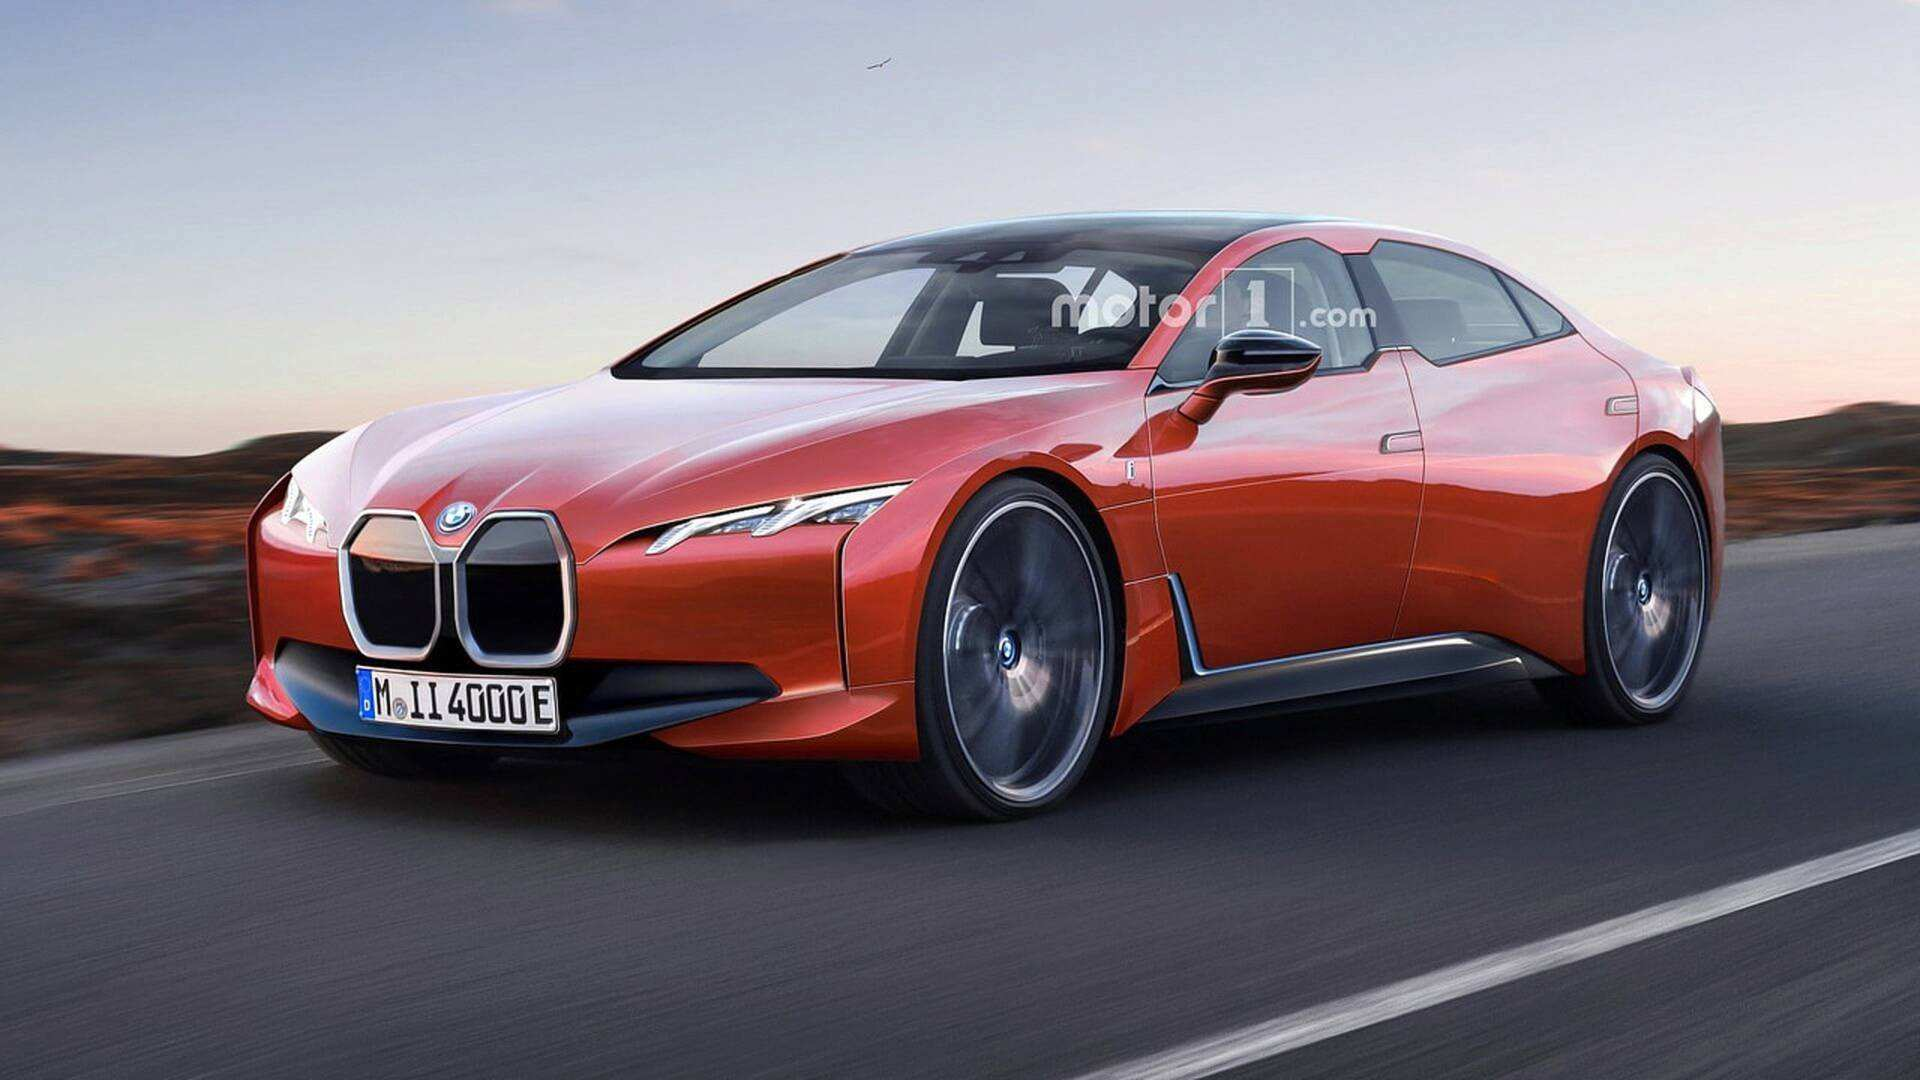 89 Concept of BMW All Cars Electric By 2020 Style for BMW All Cars Electric By 2020